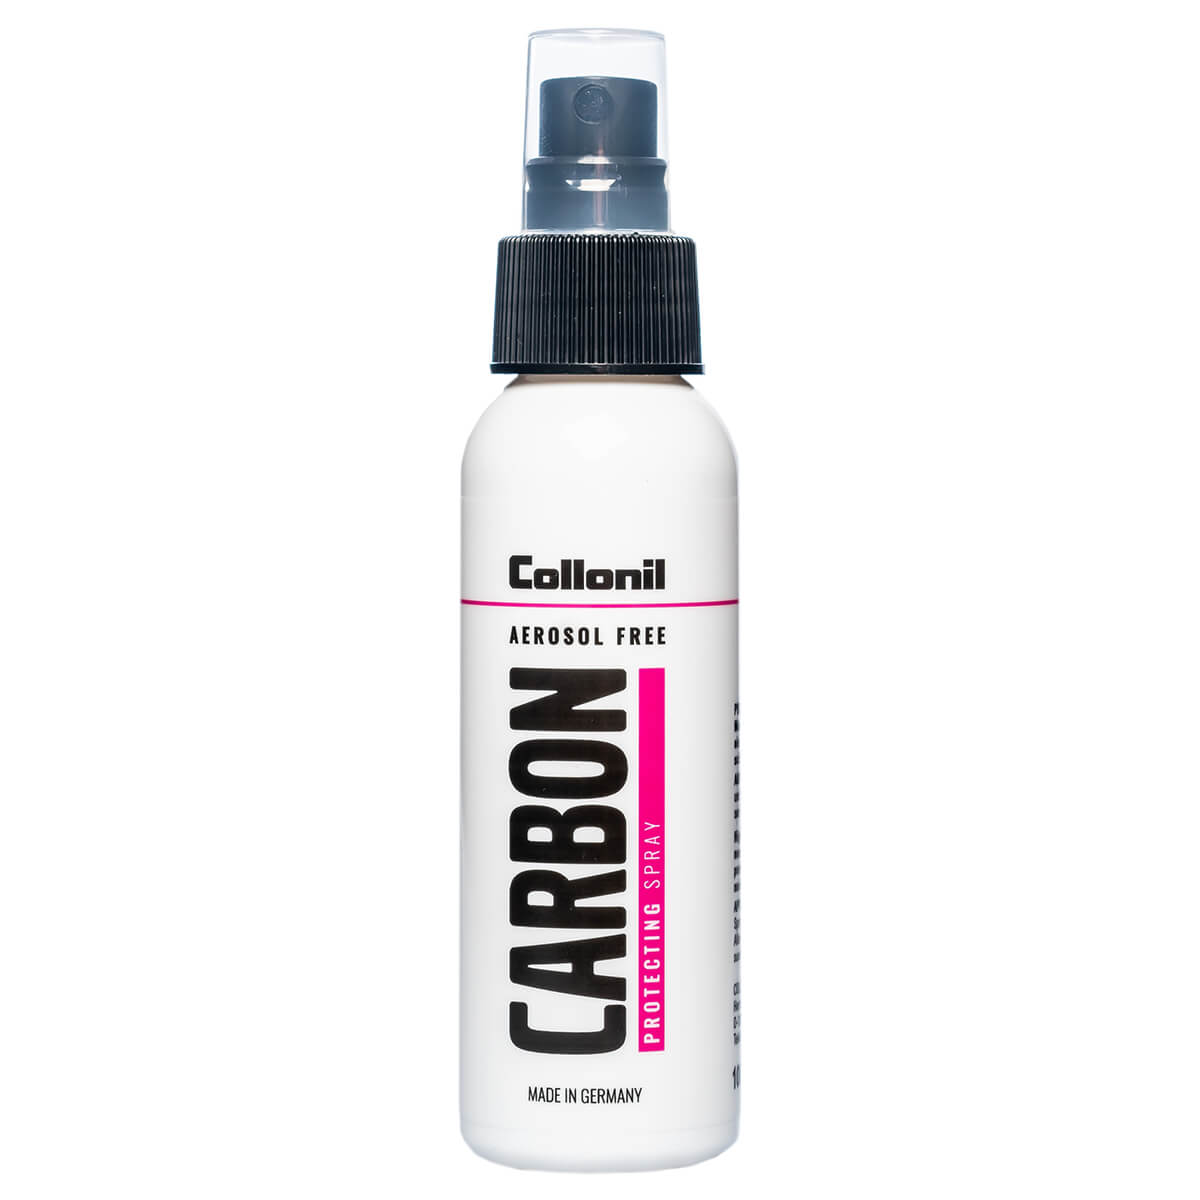 Защитный спрей для всех видов материалов  Collonil CARBON PROTEСTING SPRAY, 100 ml